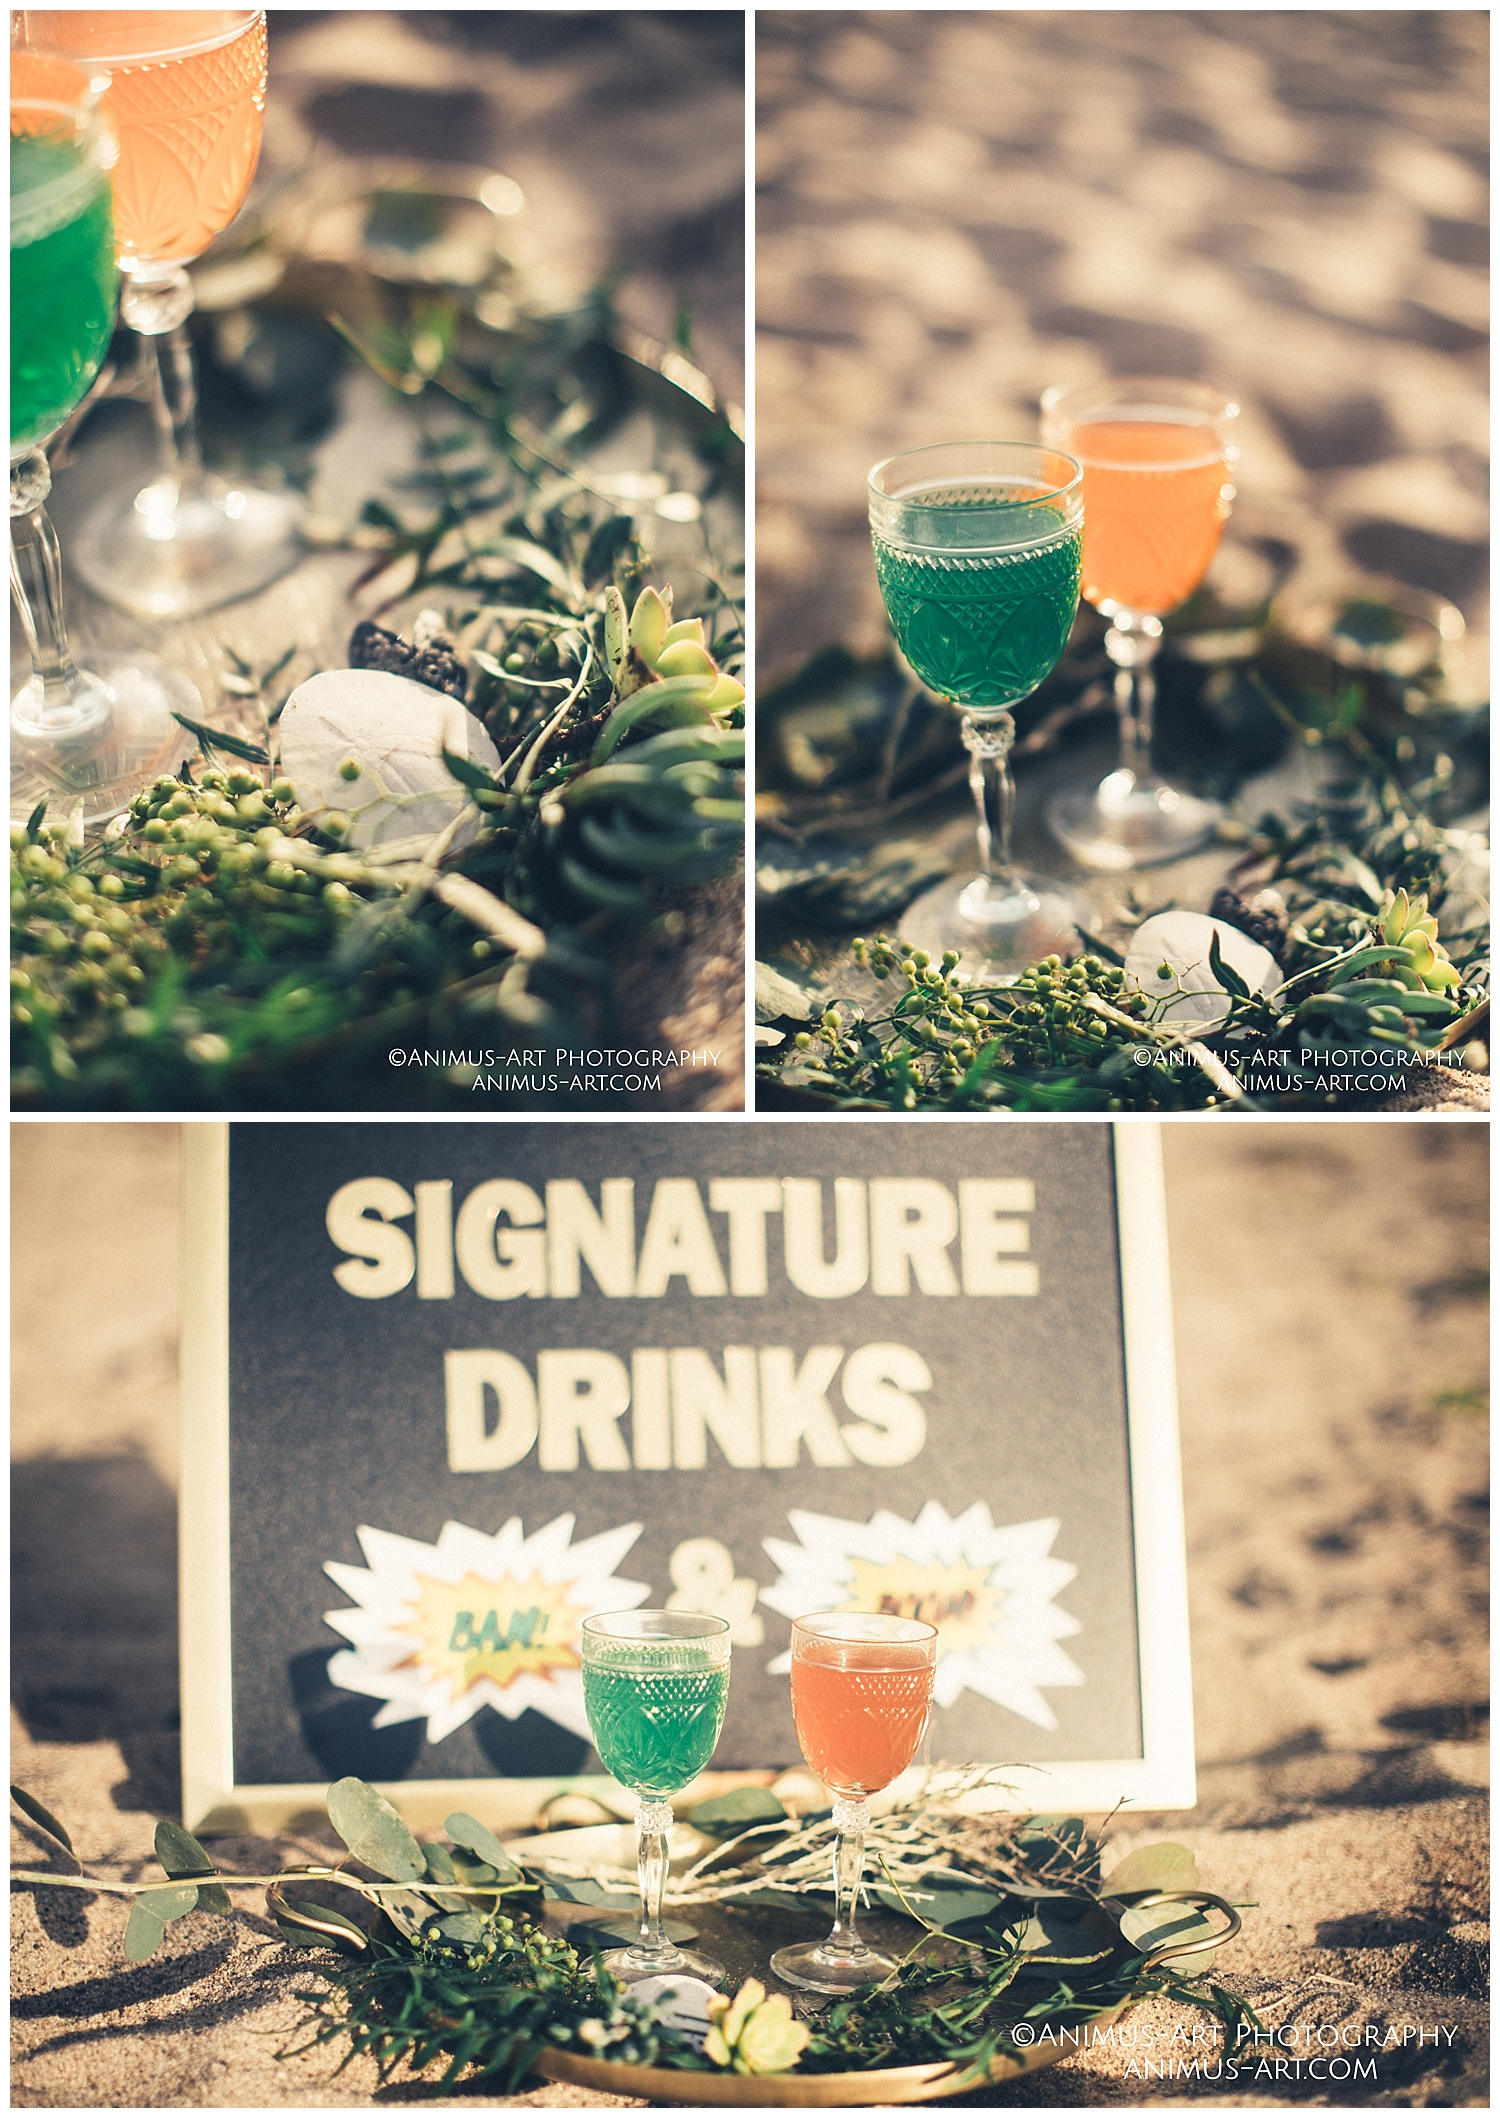 Signature Drinks Cocktails at the Beach.jpg